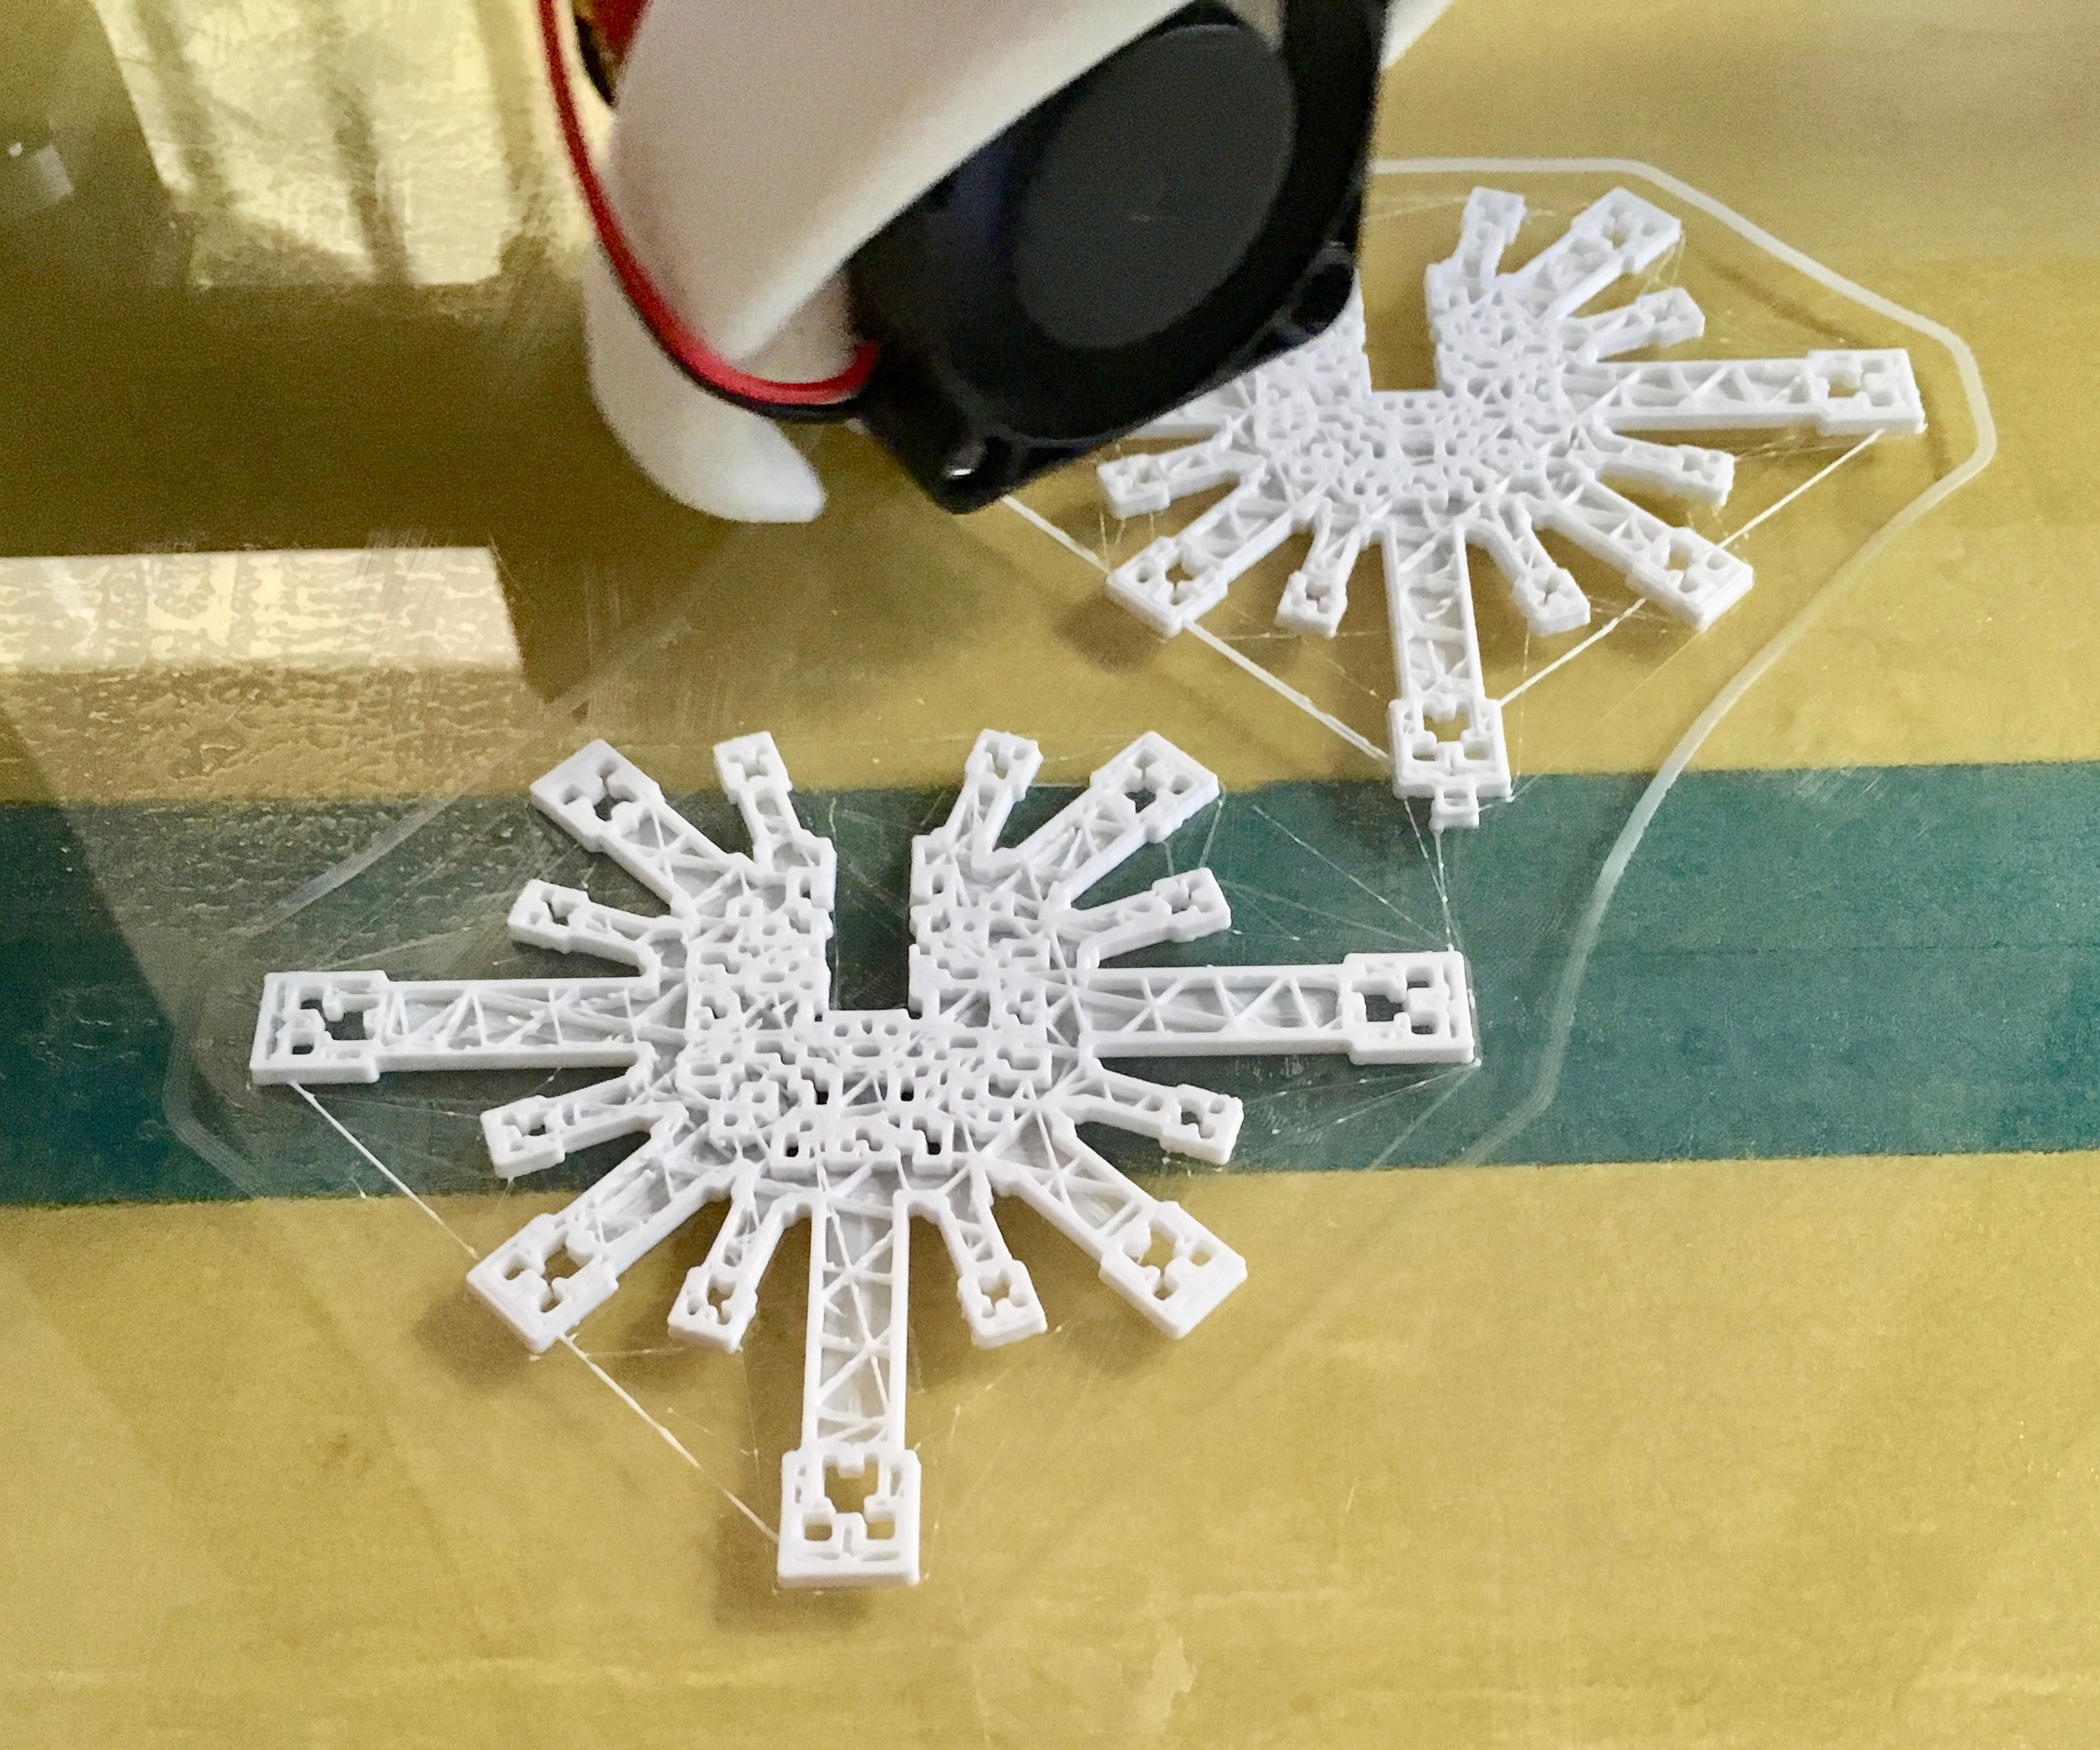 Picture of TinkerCAD and Print